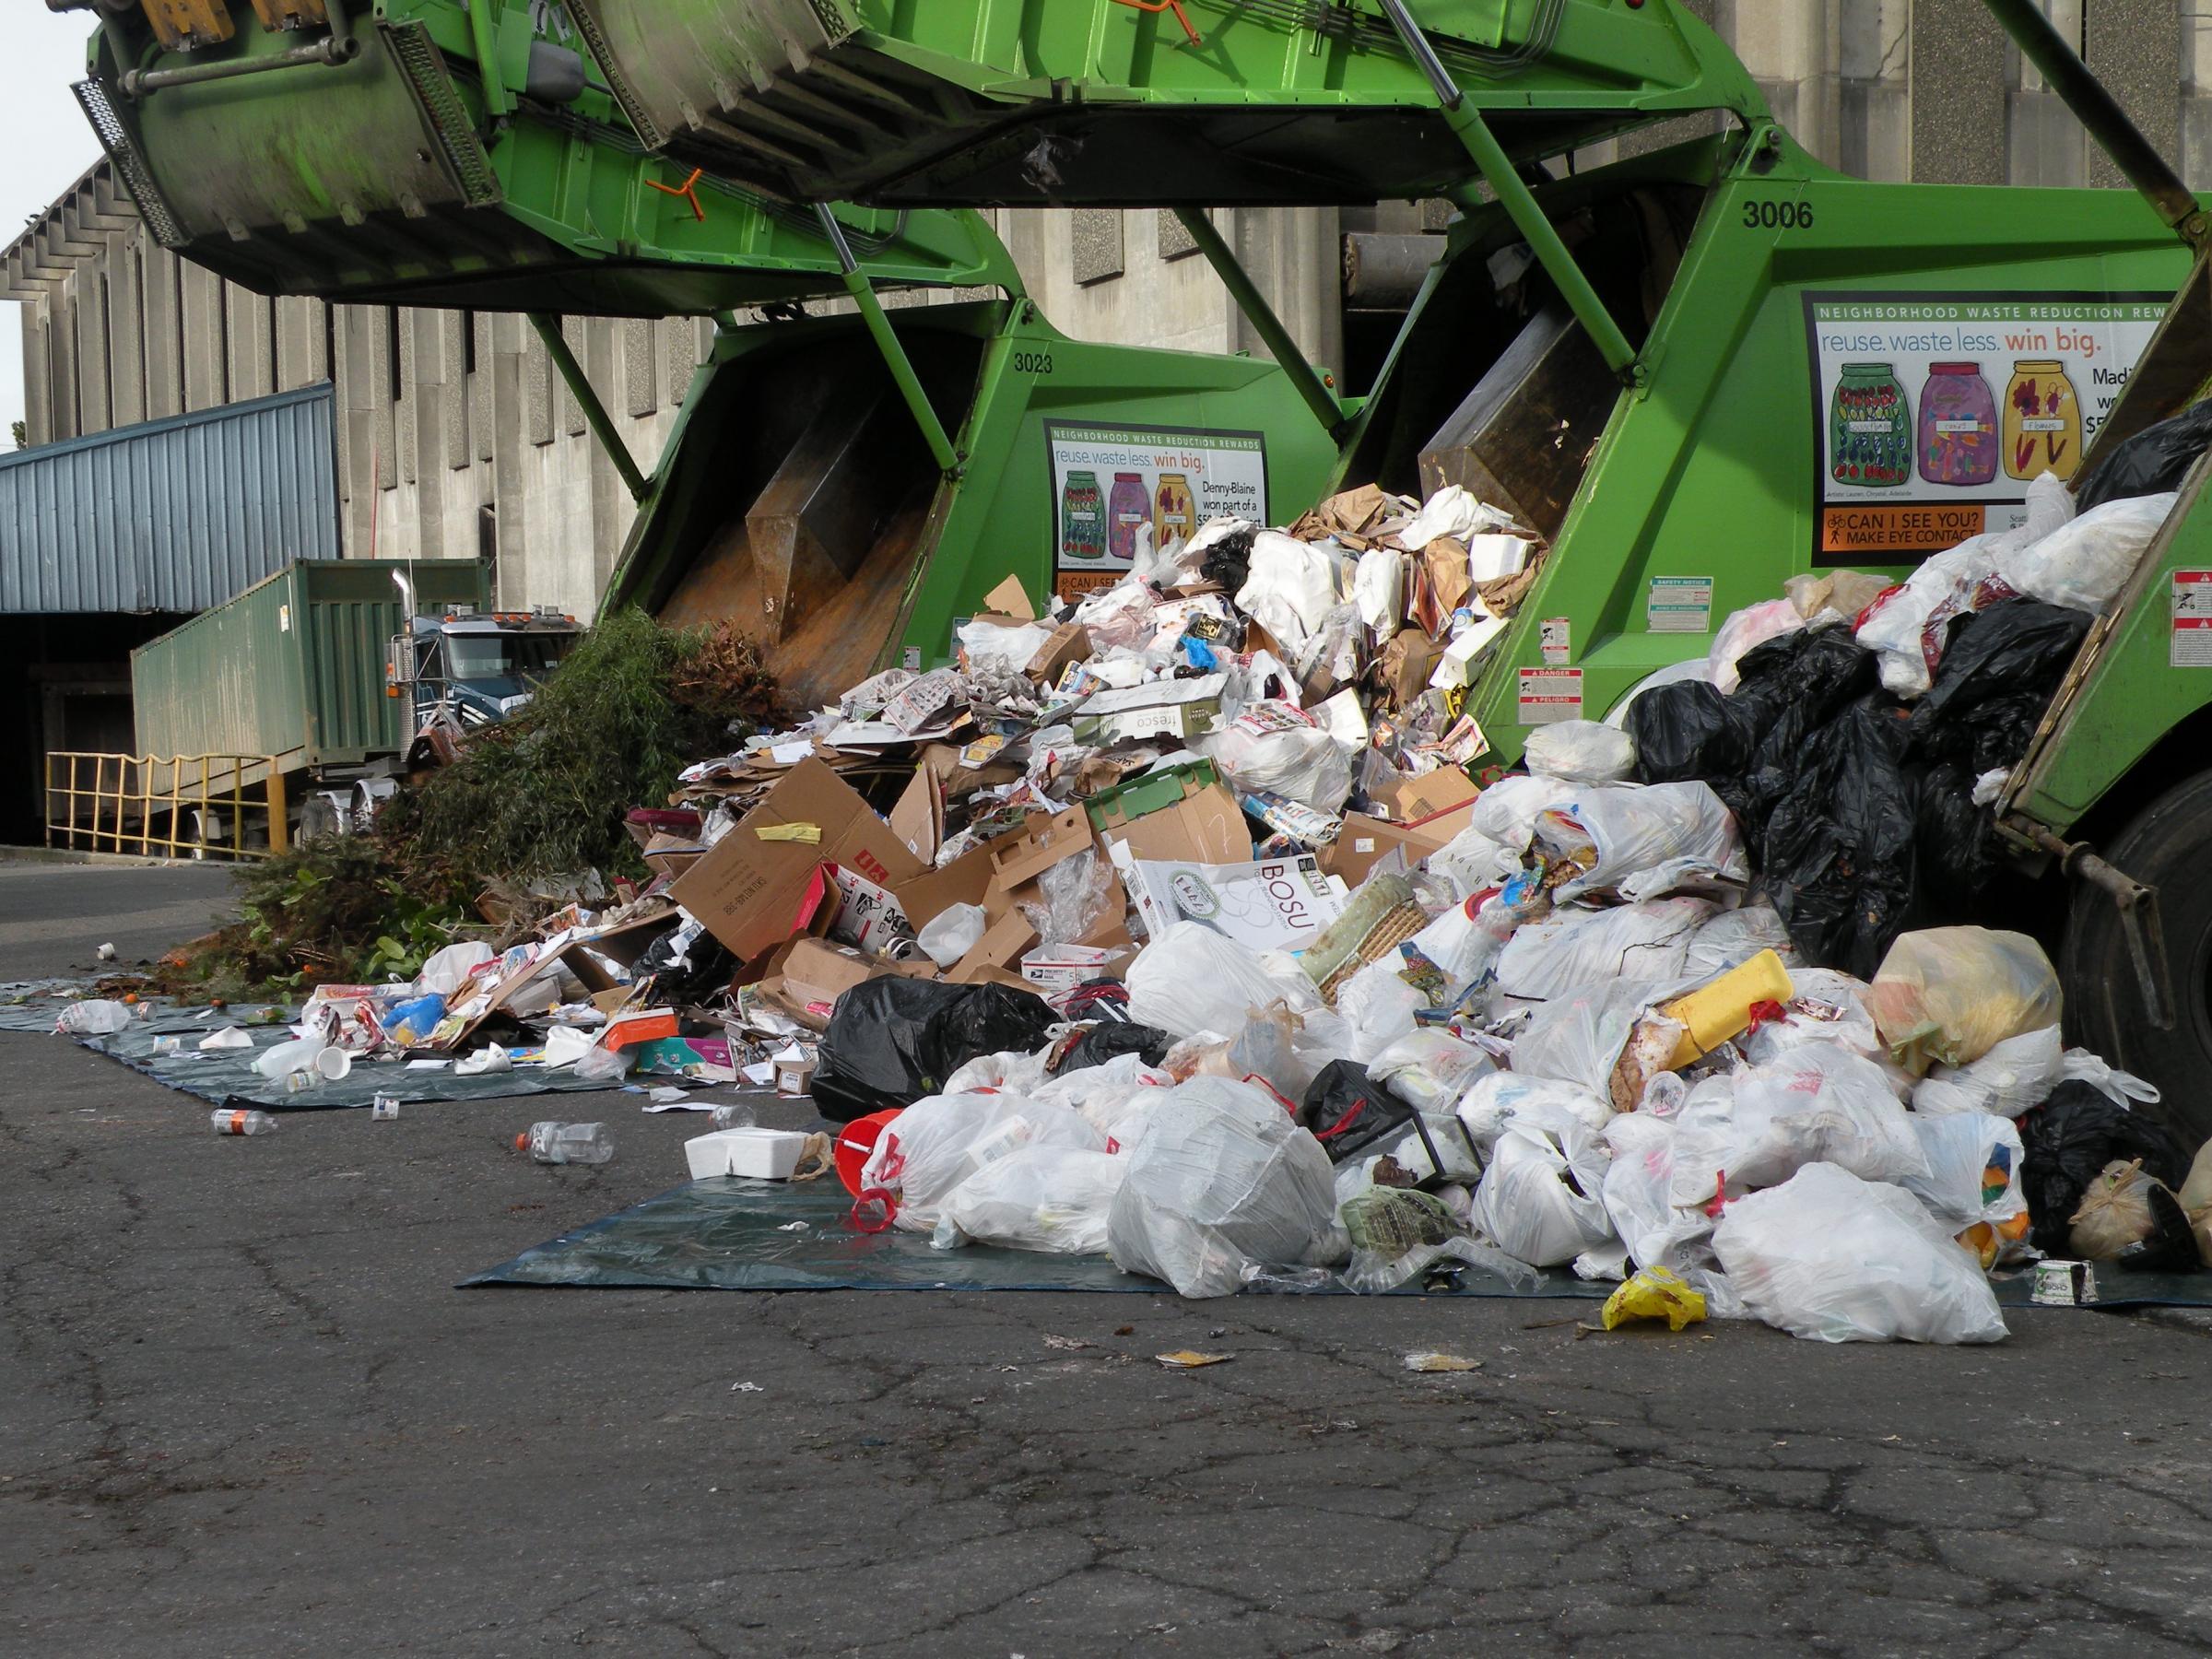 public attitudes towards recycling and waste Improving municipal recycling effort keeps public spaces clean, eradicates pest problems & provides environmental benefits by waste diversion from landfills the recyclable materials left in the us landfill waste stream would have amounted to over $7 billion if properly recycled.